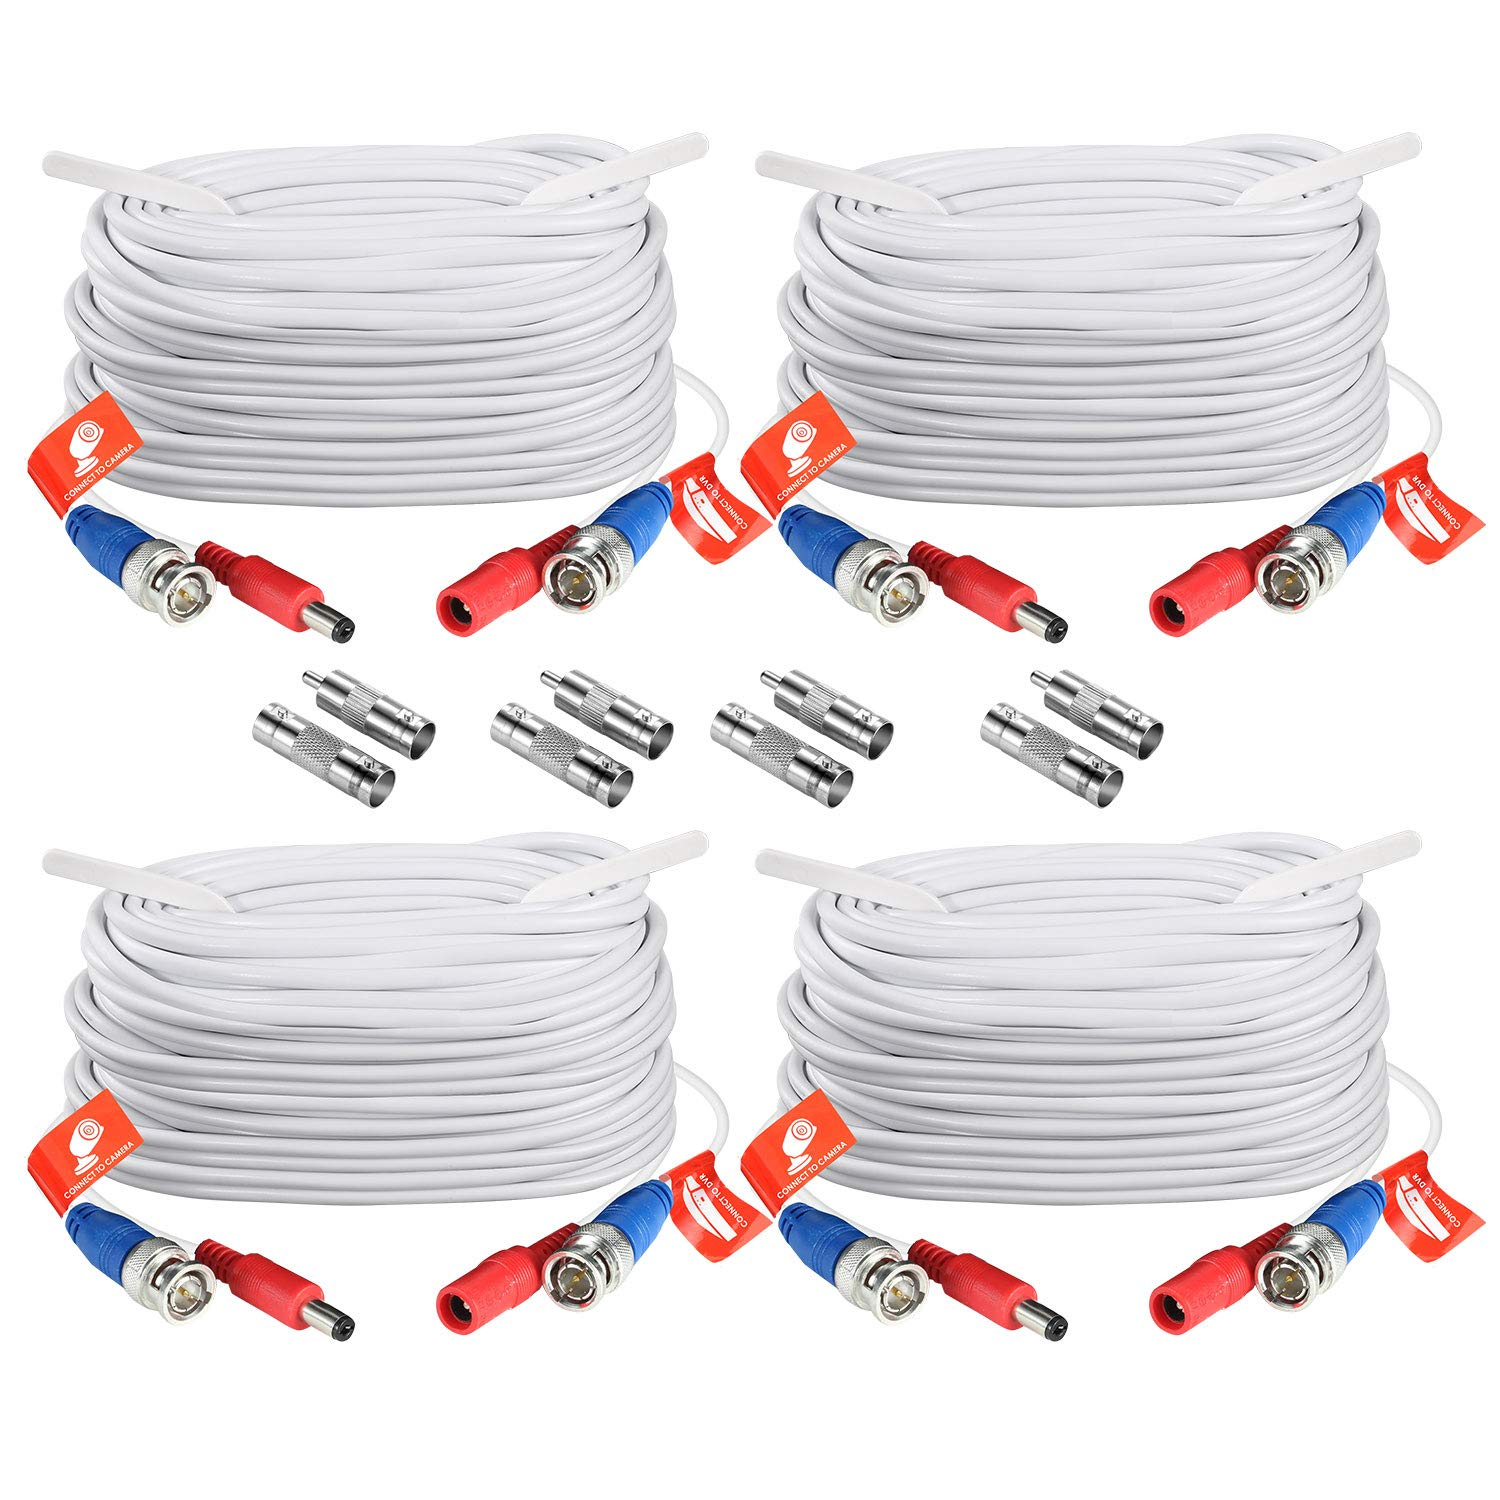 ZOSI 4 Pack 100ft (30 M) 2-in-1 Video Power Cable, BNC Extension Surveillance Camera Cables for Security Camera DVR Systems (White) by ZOSI